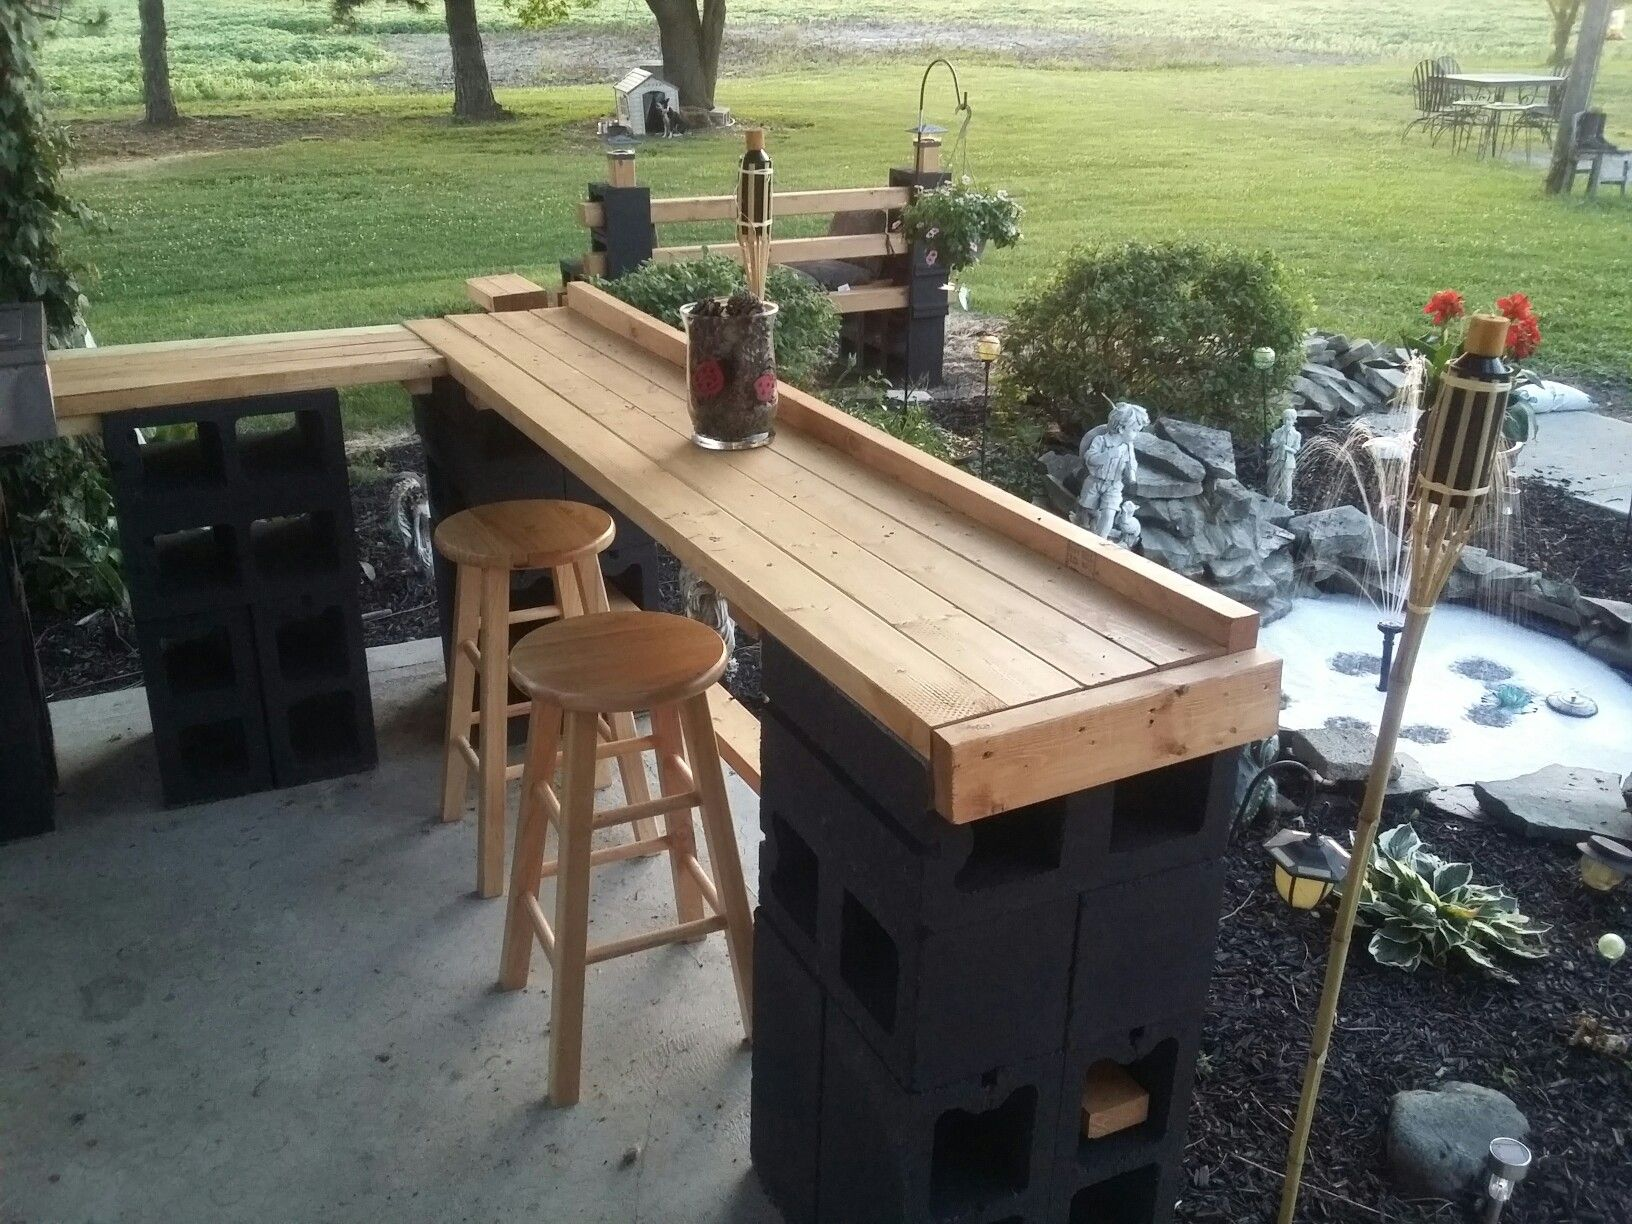 cinder block patio bar -janice lininger JPAQXOG